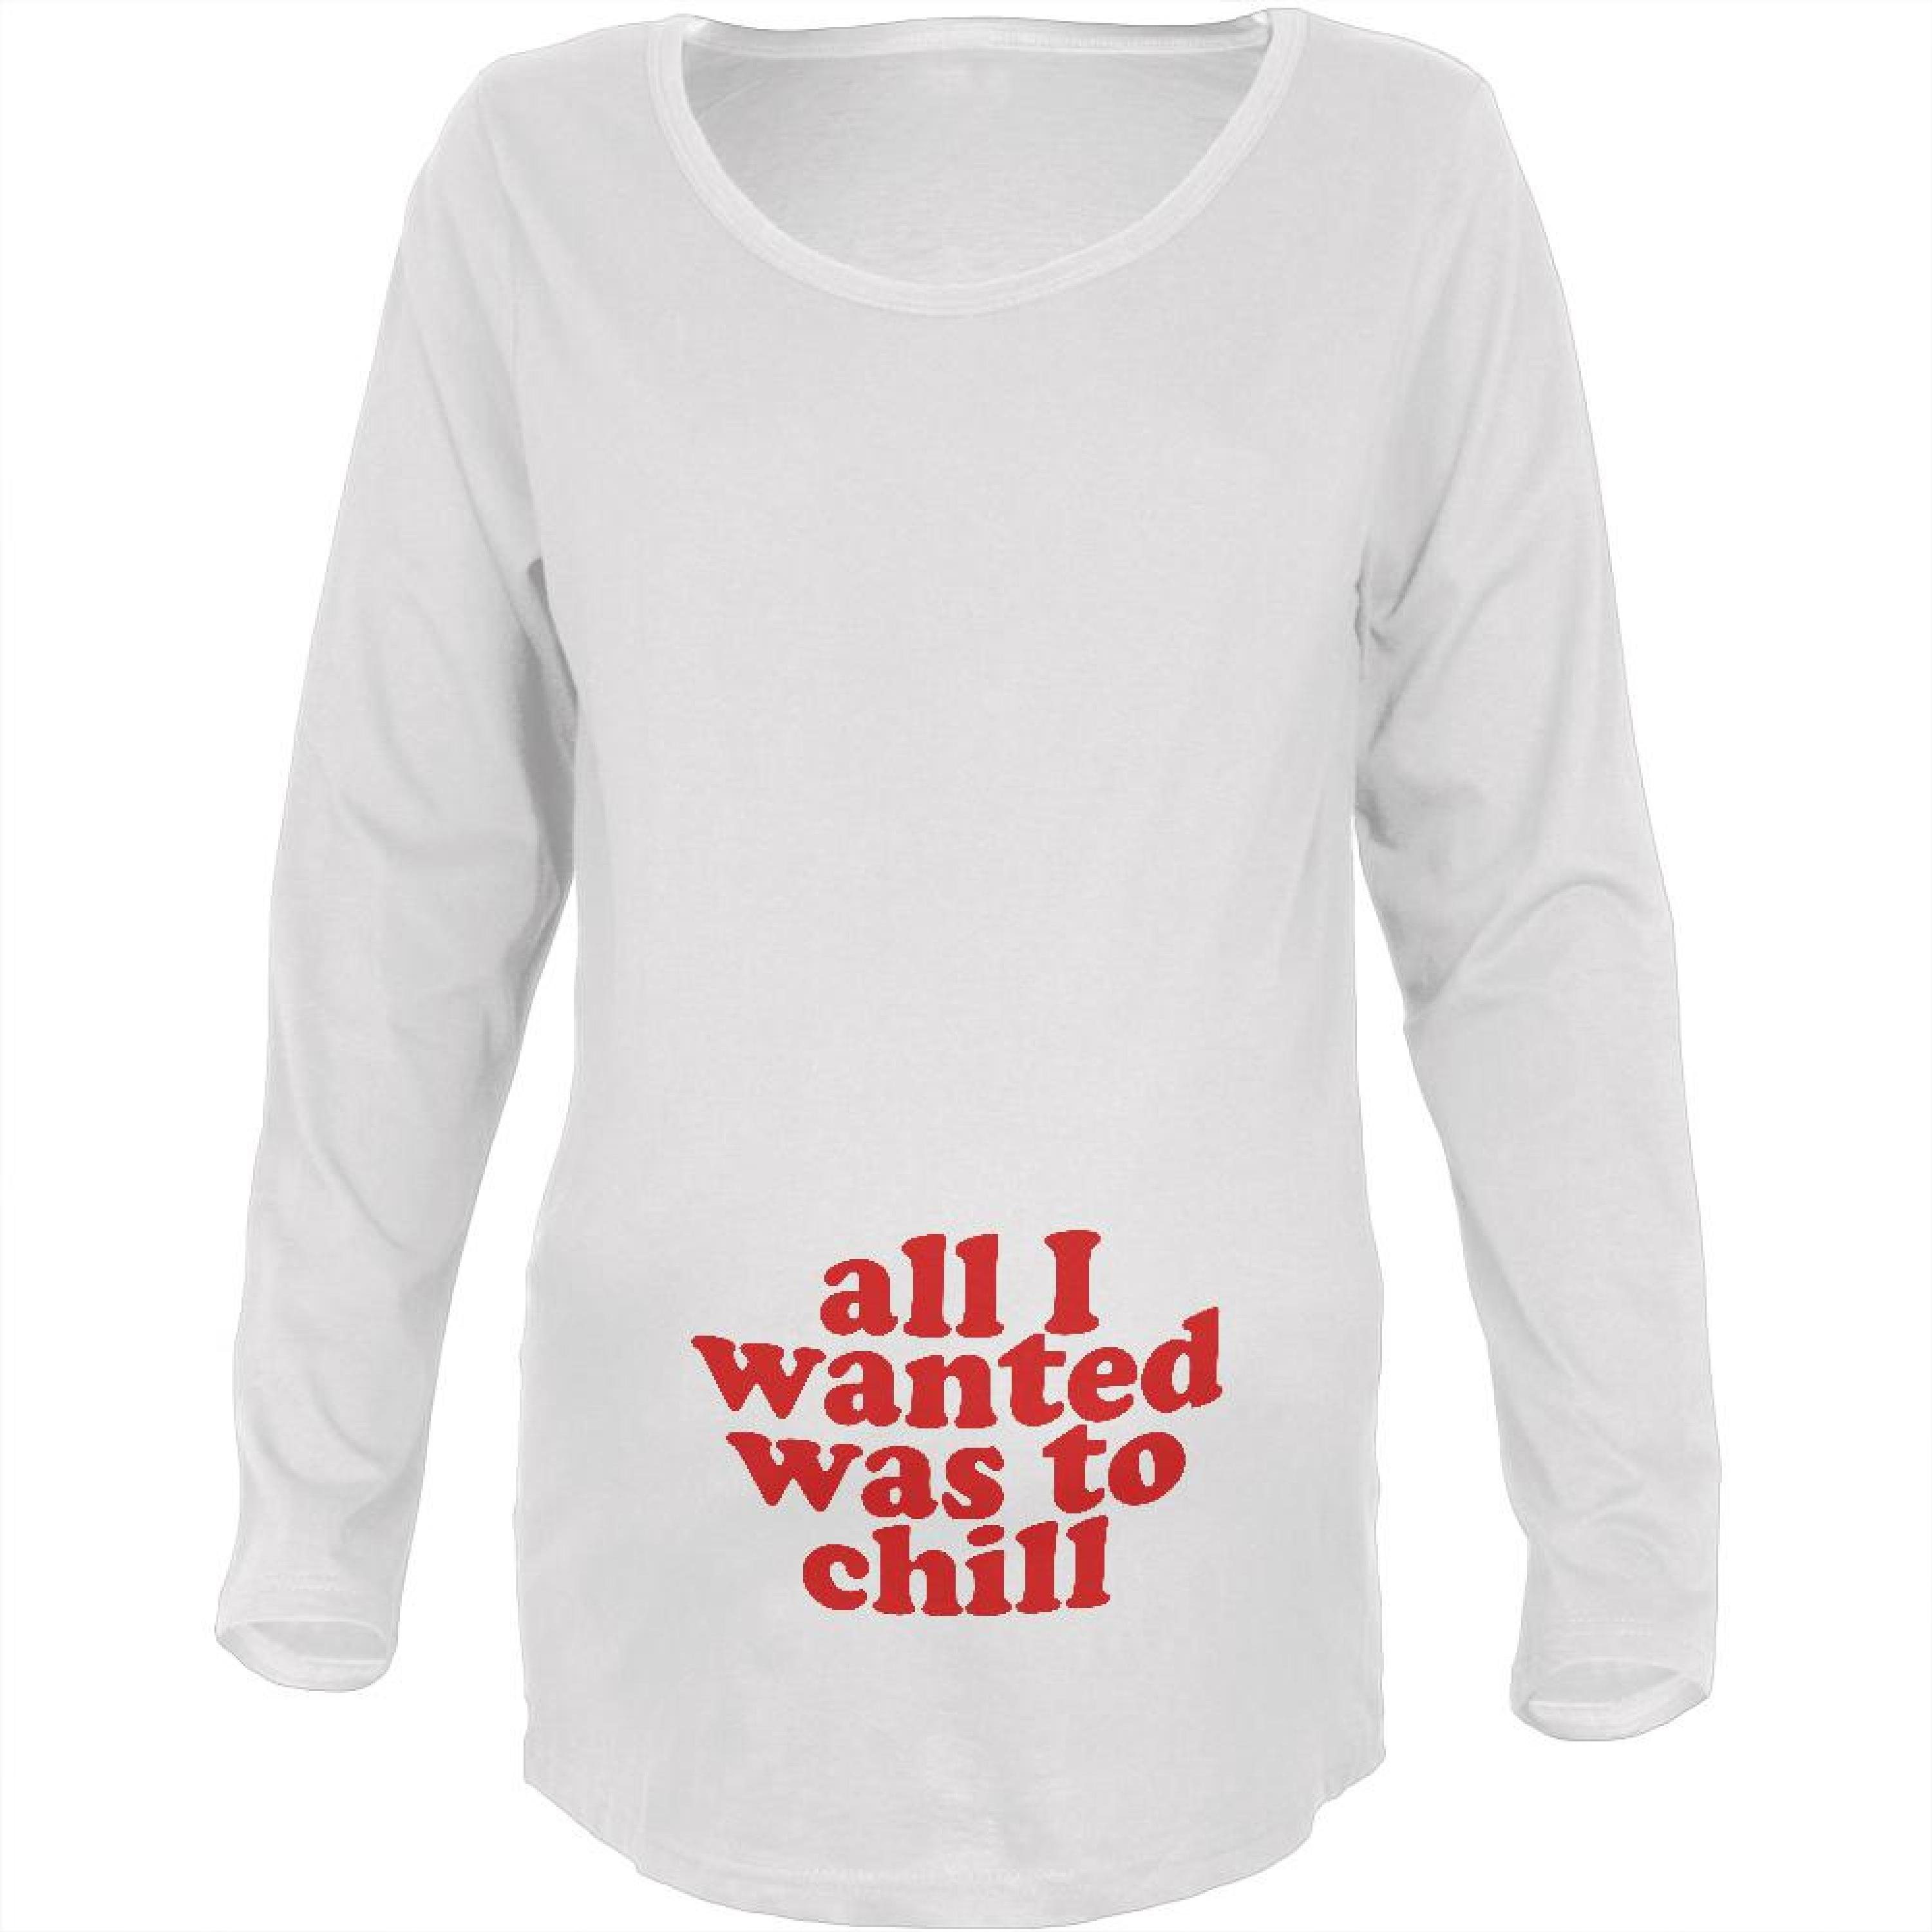 All I Wanted Chill Funny White Maternity Soft Long Sleeve T-Shirt